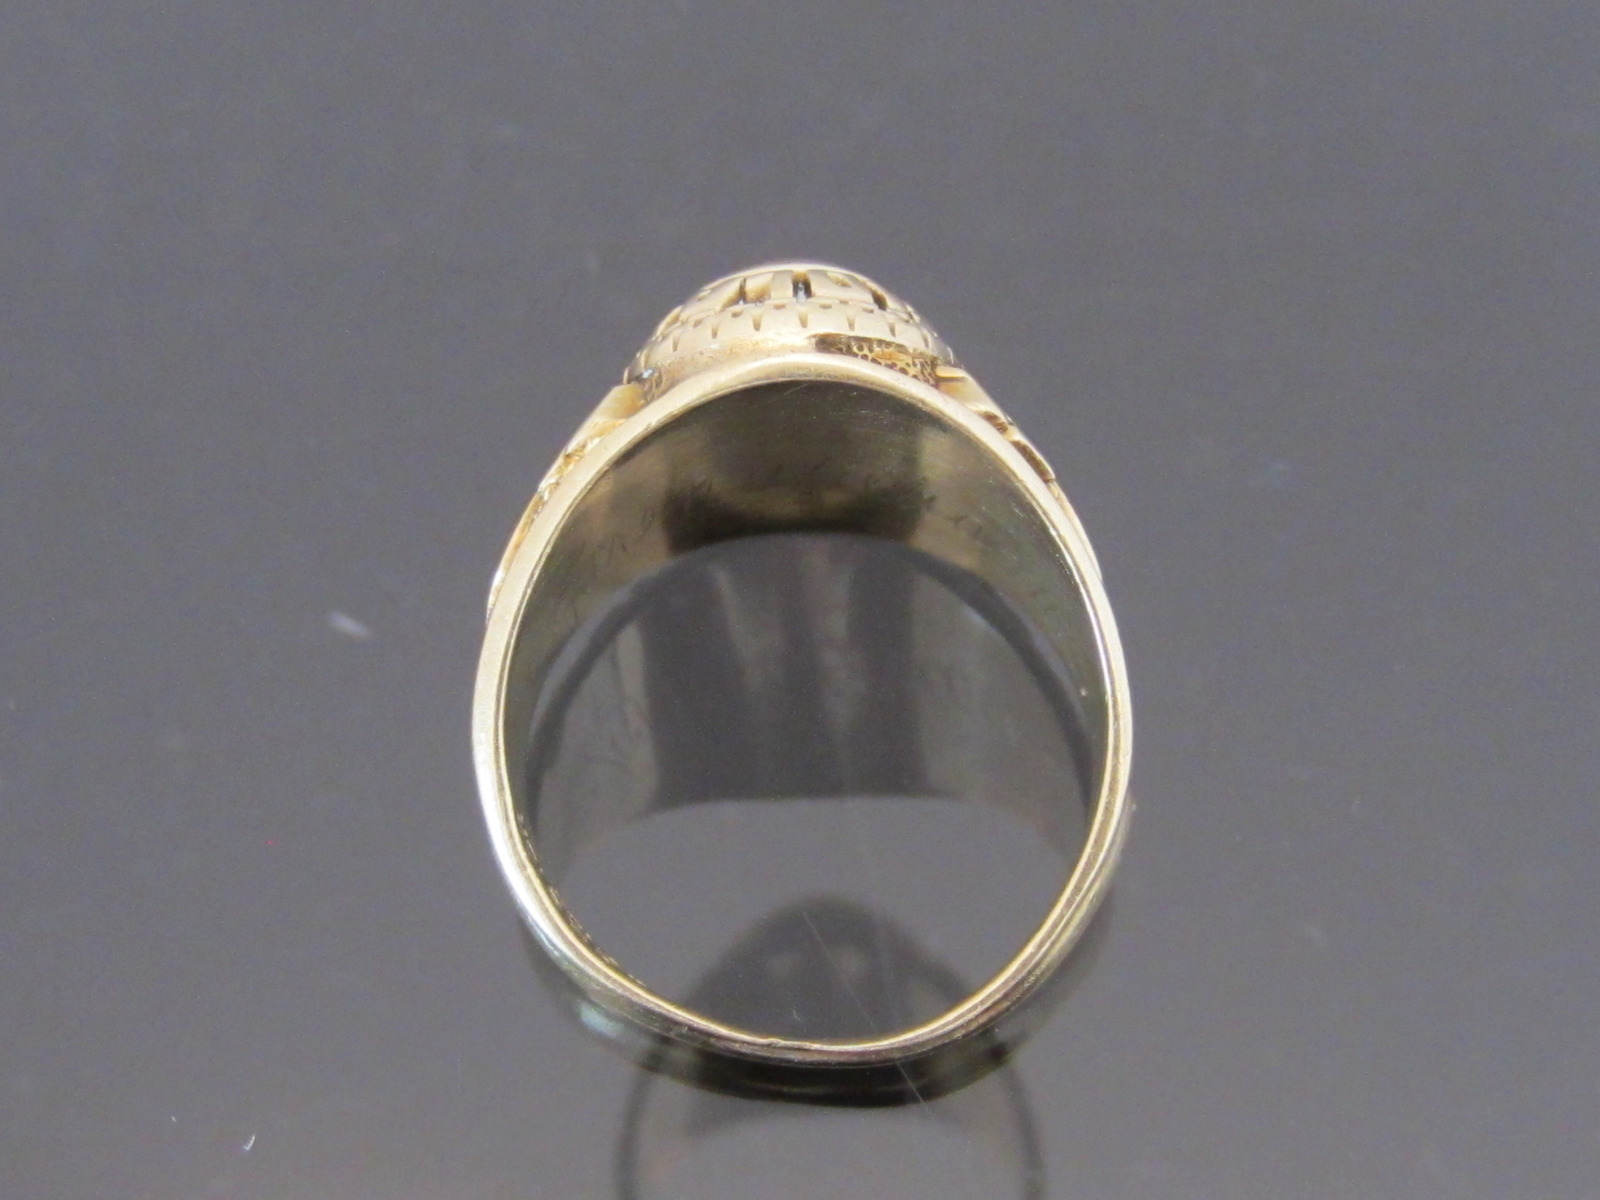 Vintage 1980s Solid 10K Yellow Gold Aquamarine Cabochon High School Class Ring S